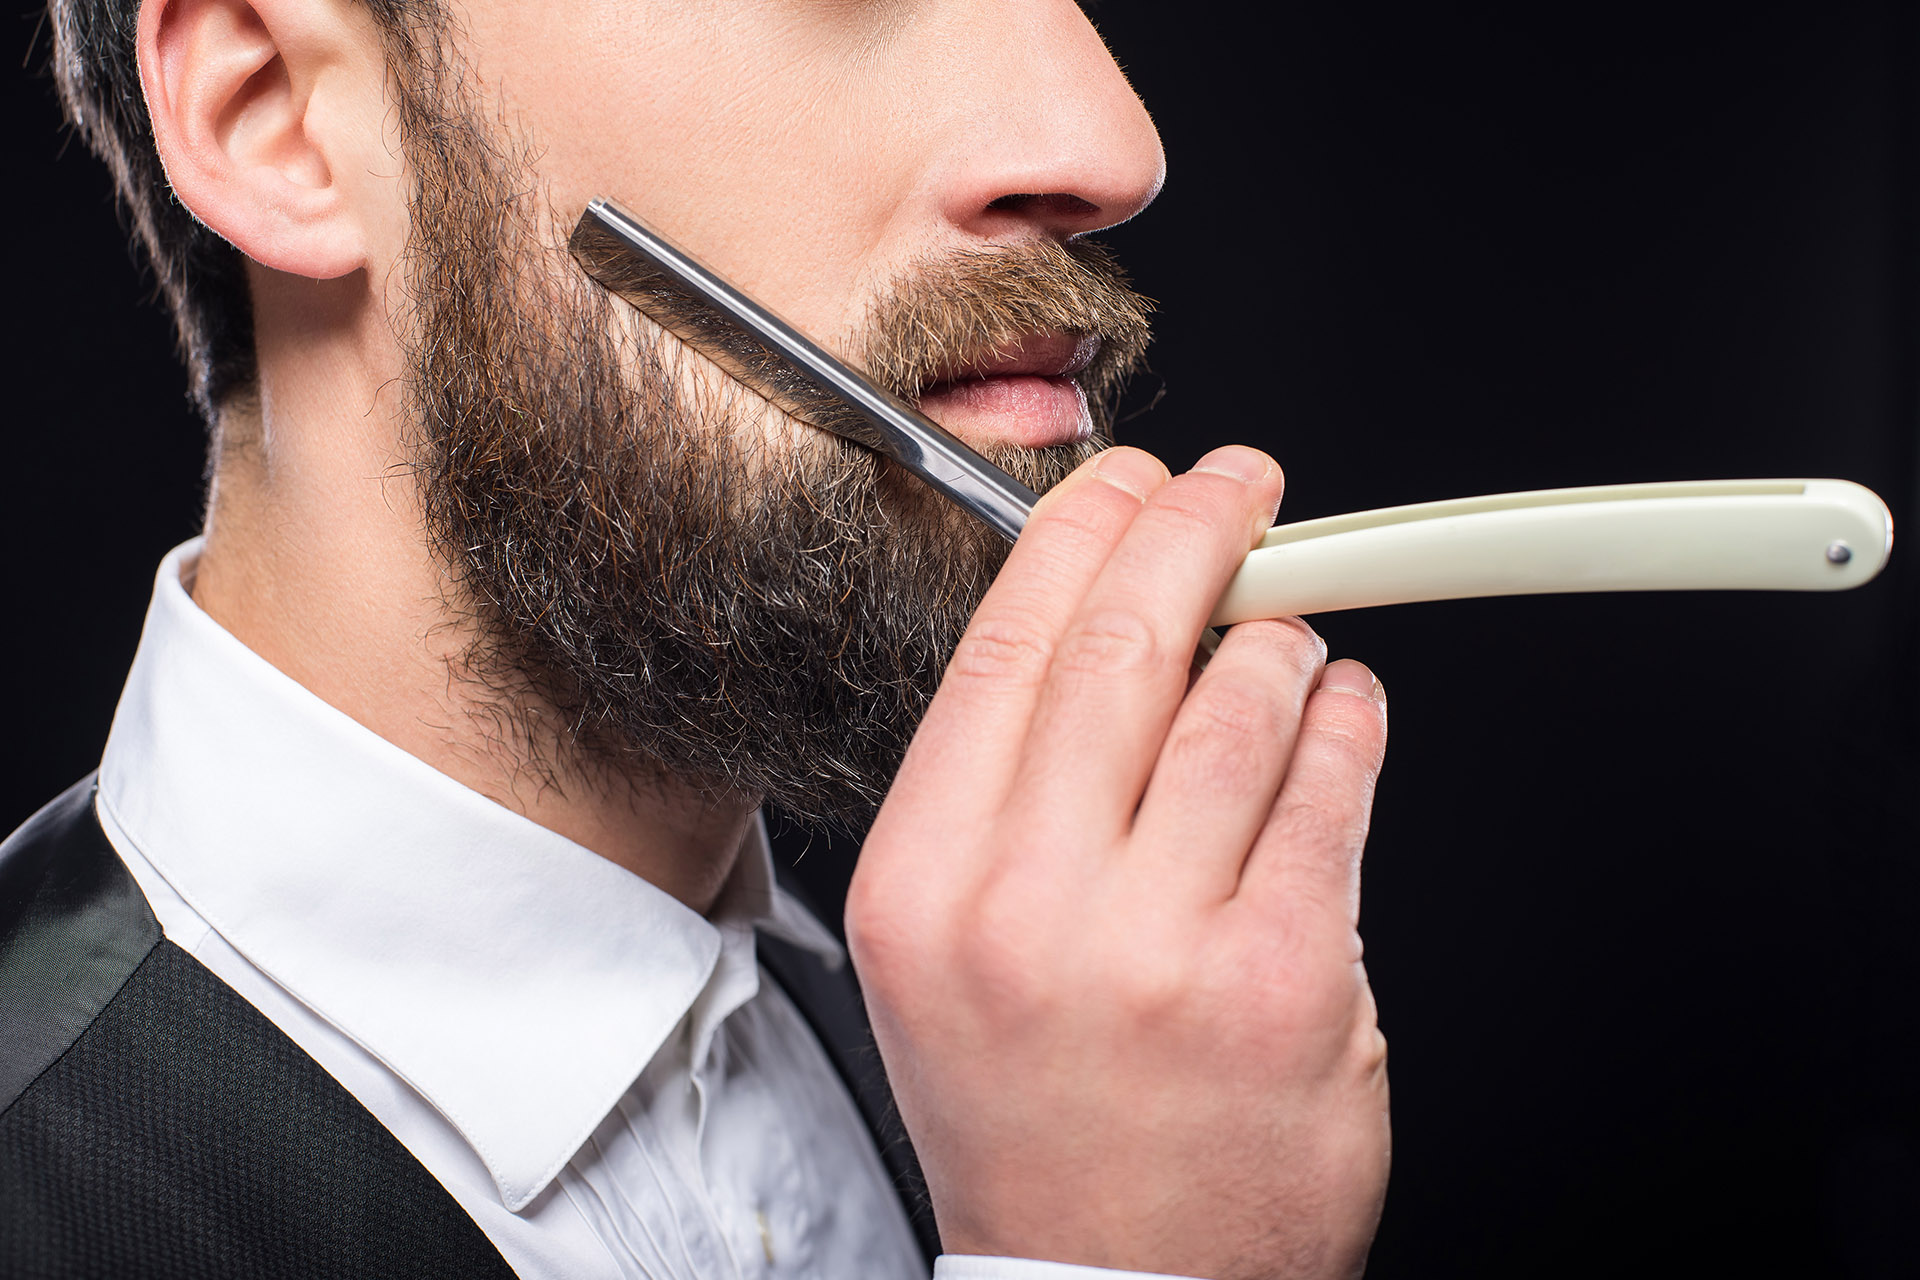 GET YOUR BEARD DONE PROPERLY